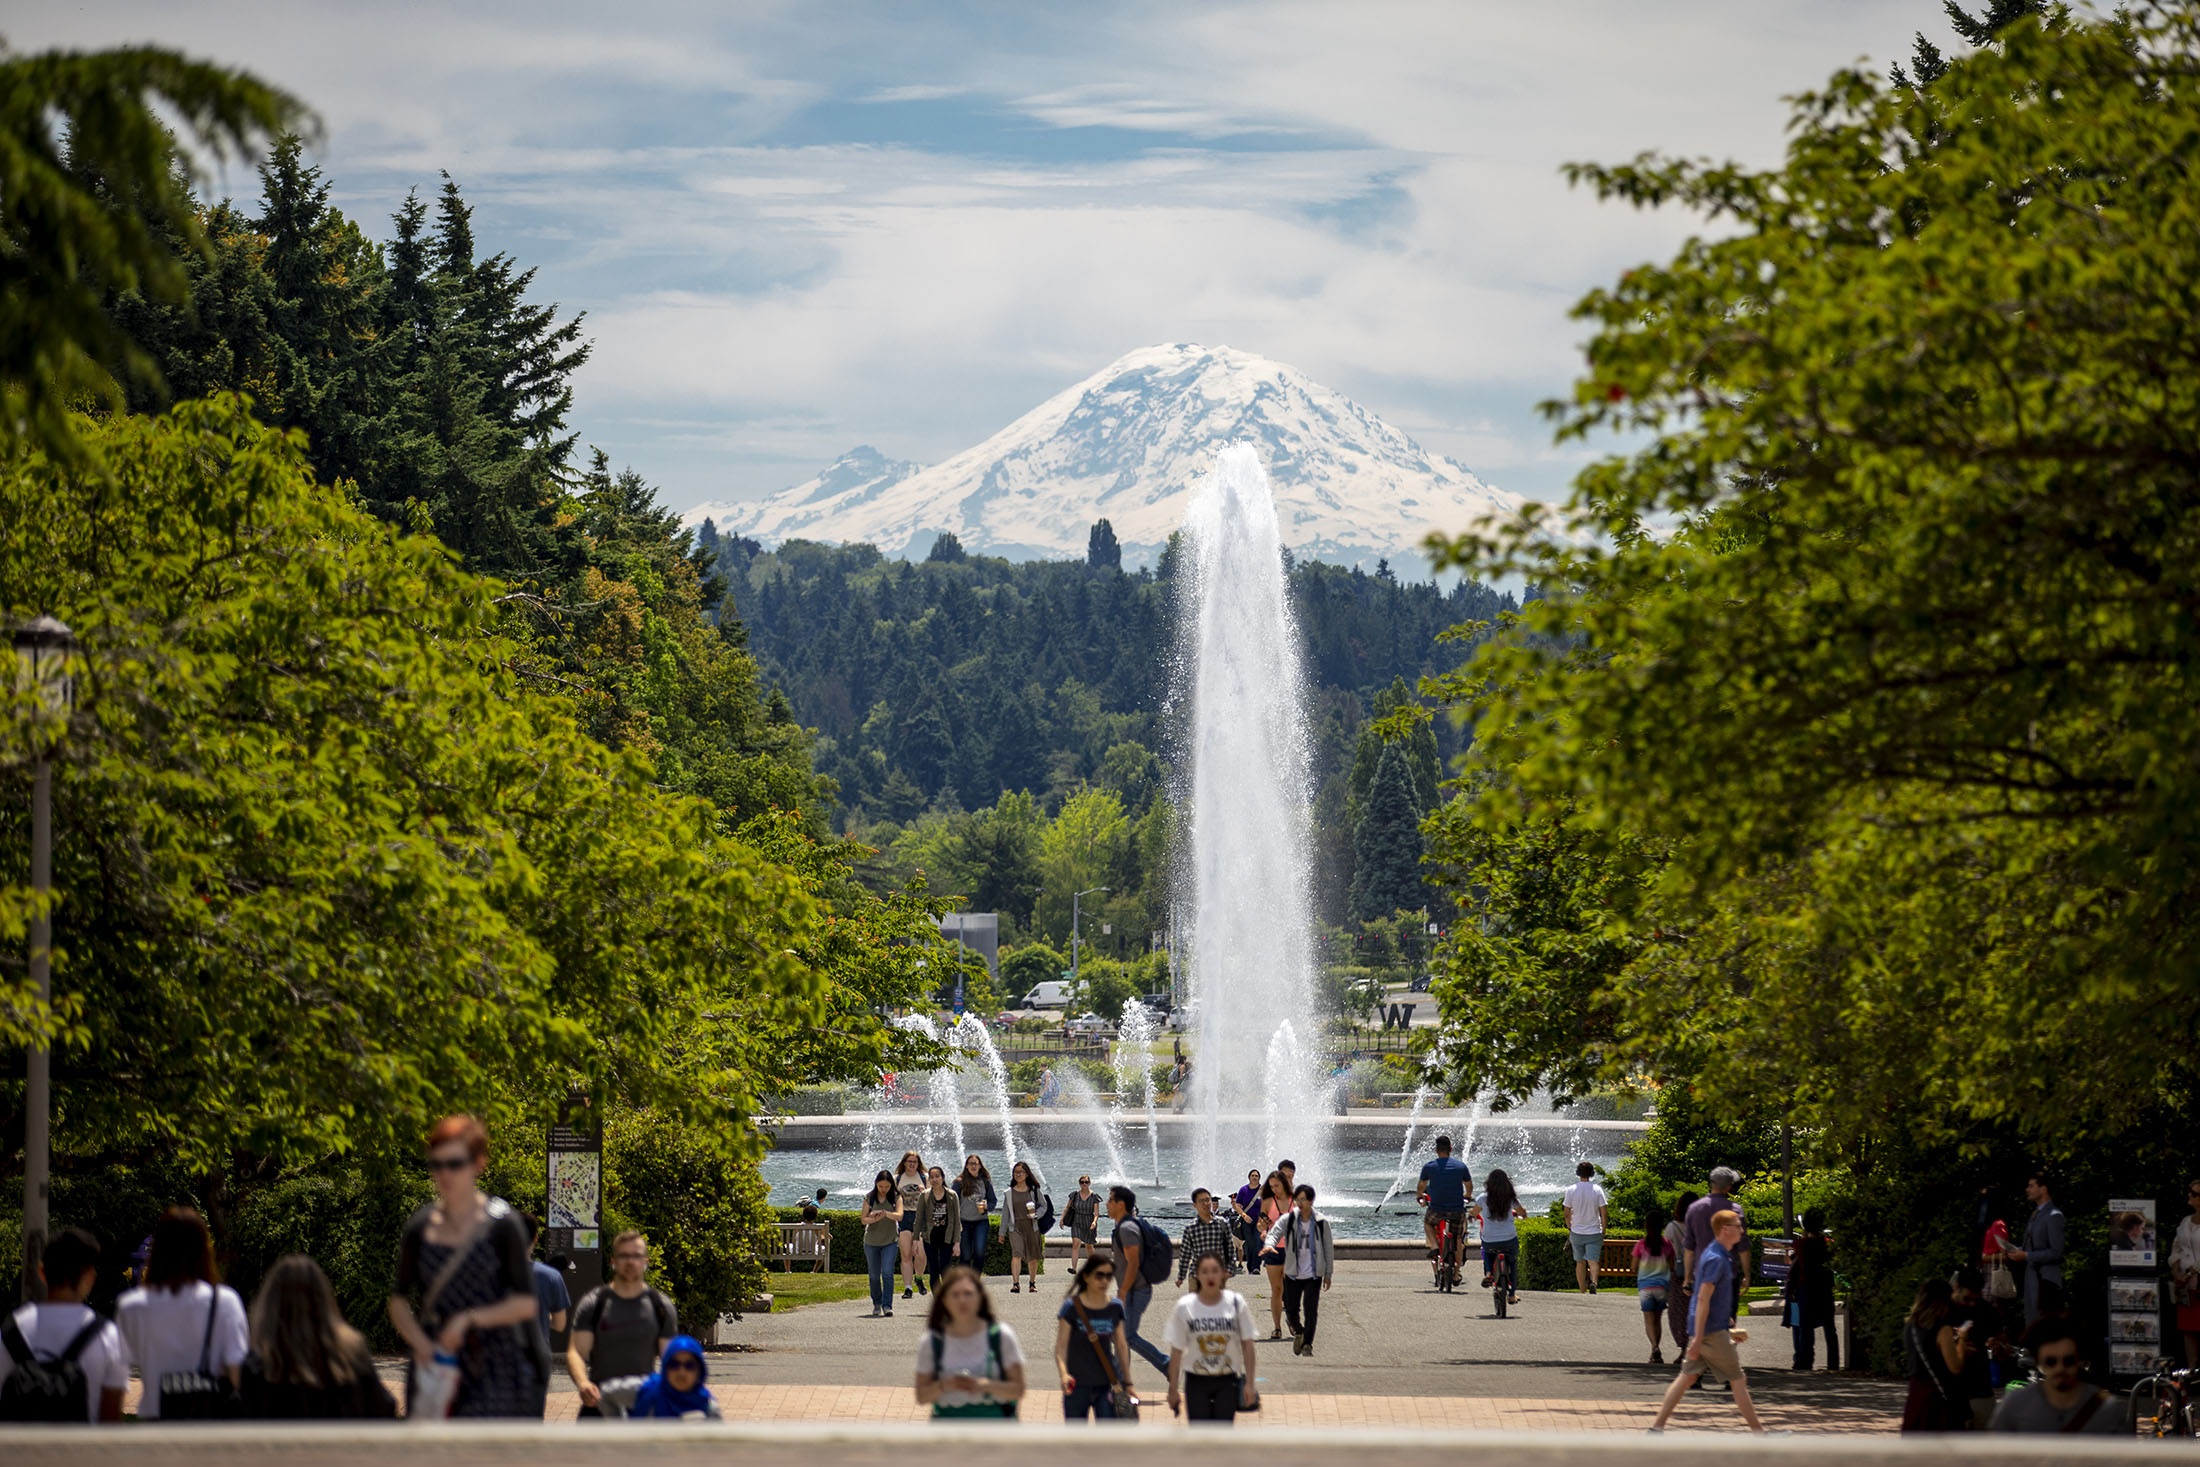 """RAINIER VISTA, The view of """"The Fountain and The Mountain"""" from Rainier Vista is unmatched for its grandeur and beauty."""